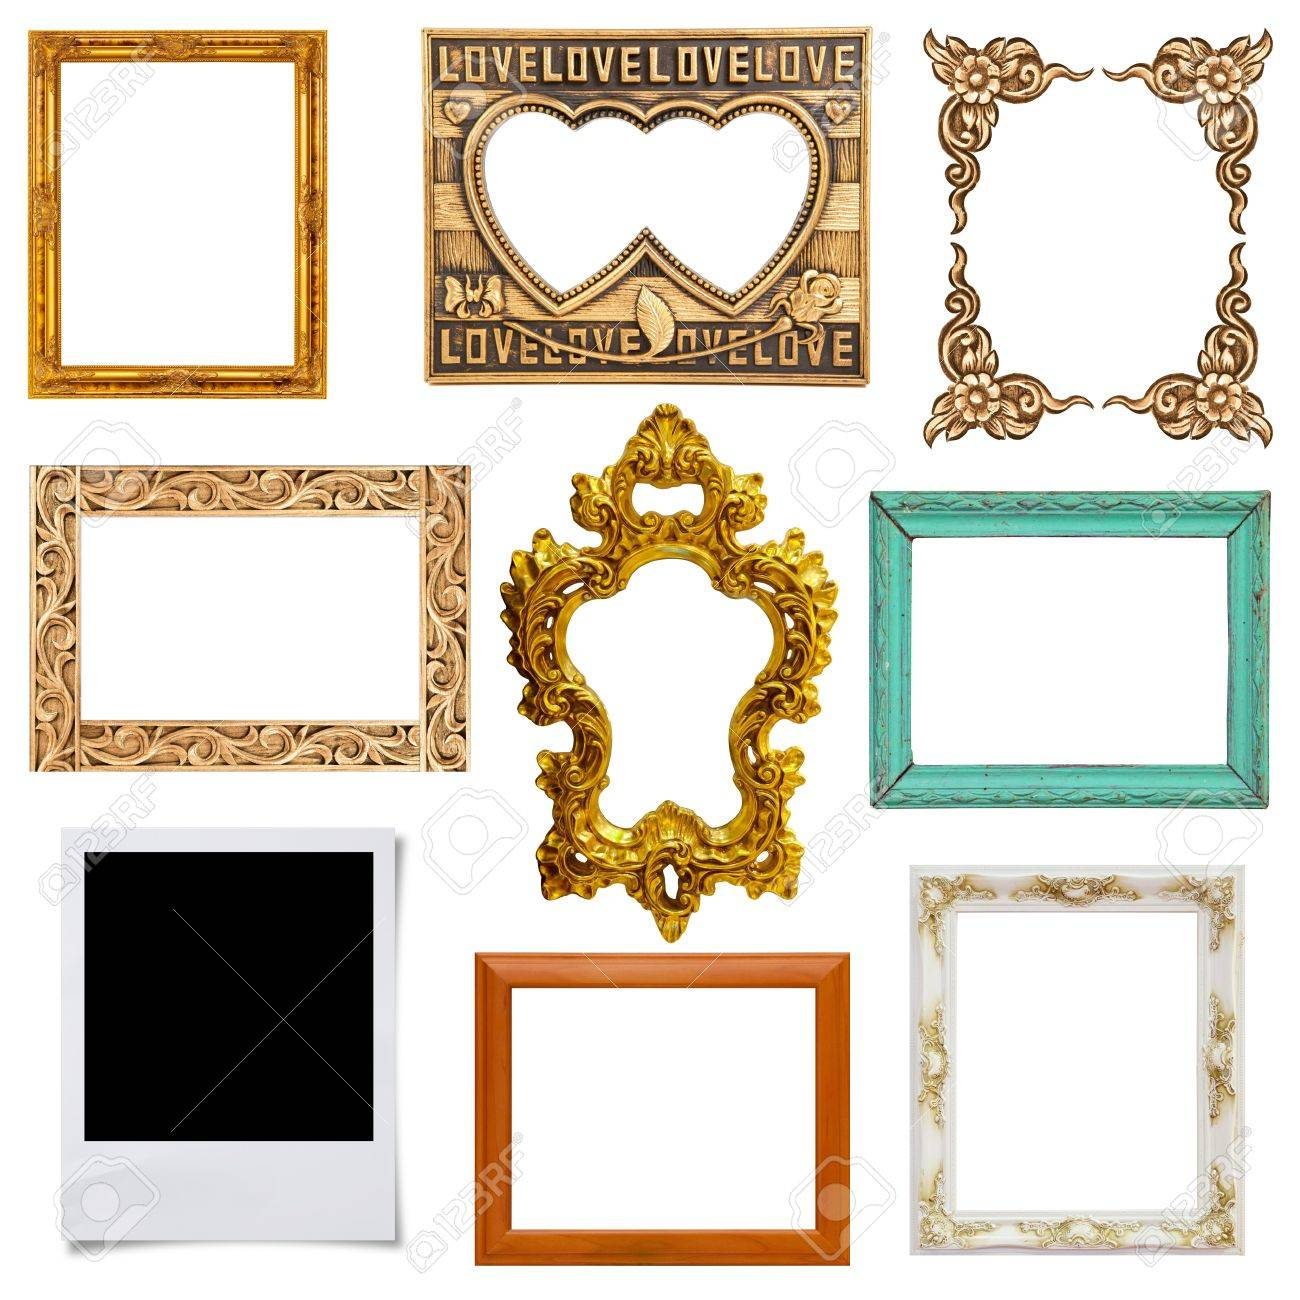 Gold and wood frame Collection on white background Stock Photo - 15299327